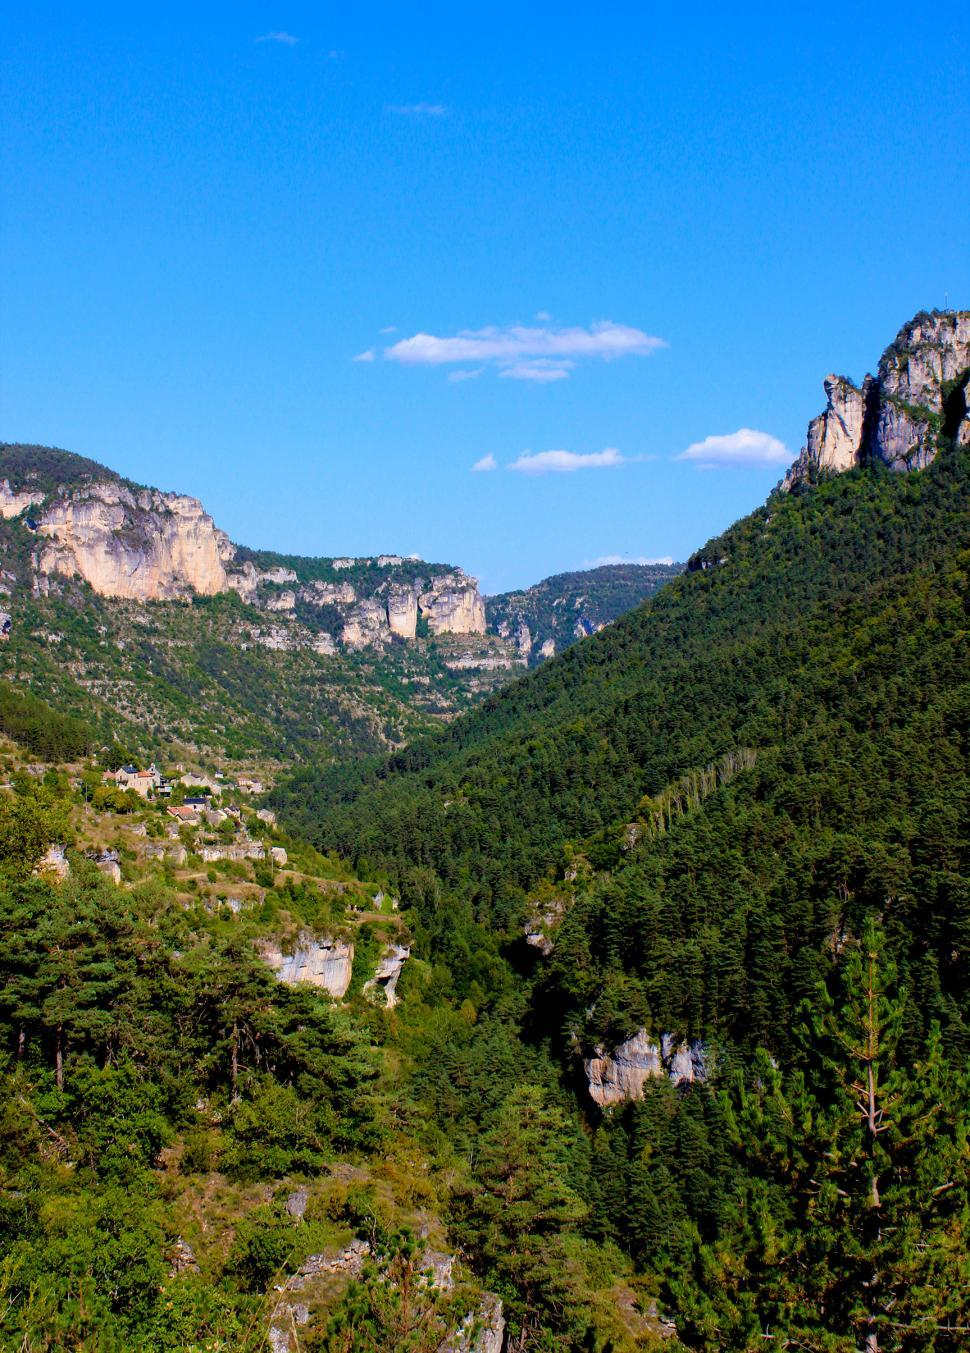 Download Free Stock HD Photo of Canyon - Typical Landscape in Gorges du Tarn - Southern France Online